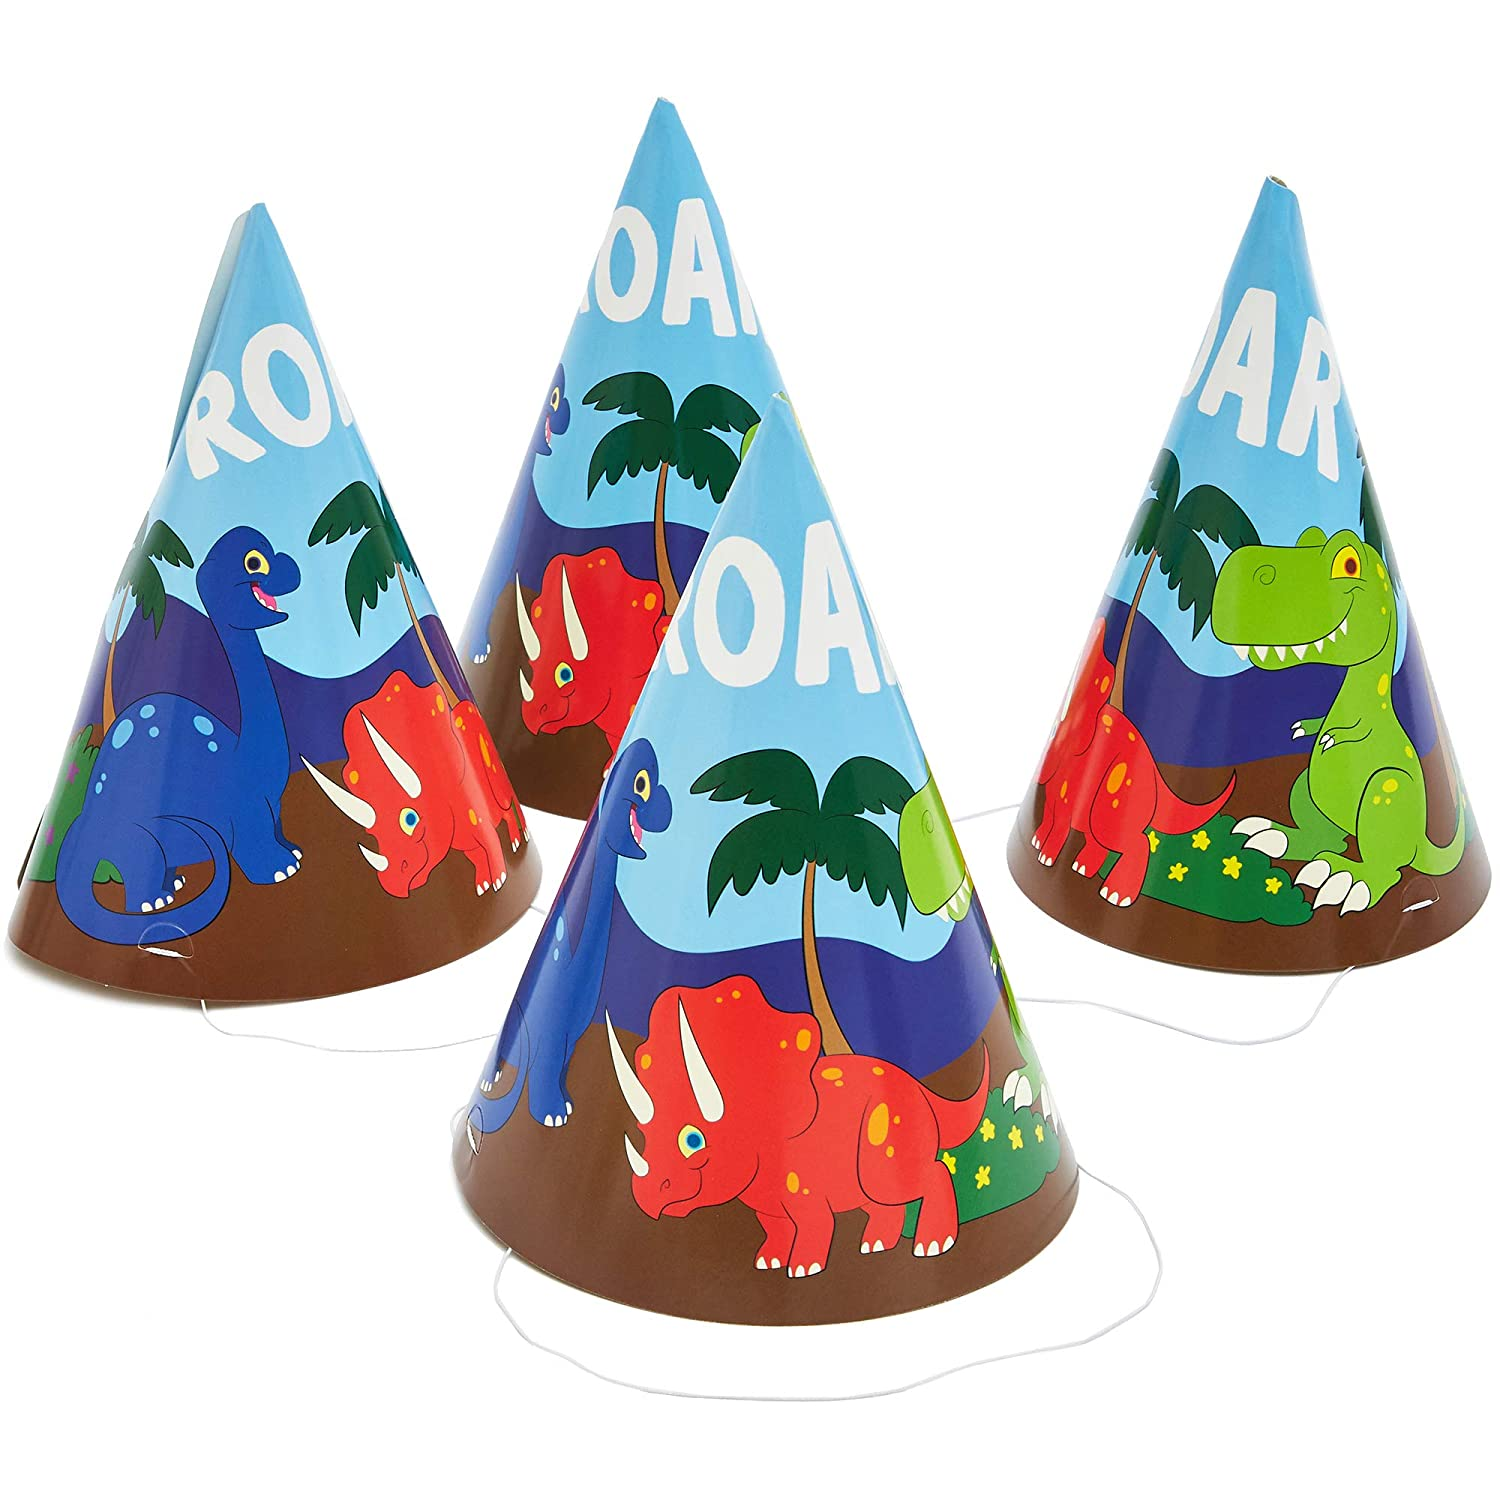 Blue Panda Dinosaur Party Cone Hats - Pack of 24-5 x 7 Inches 713c8MVGkyL